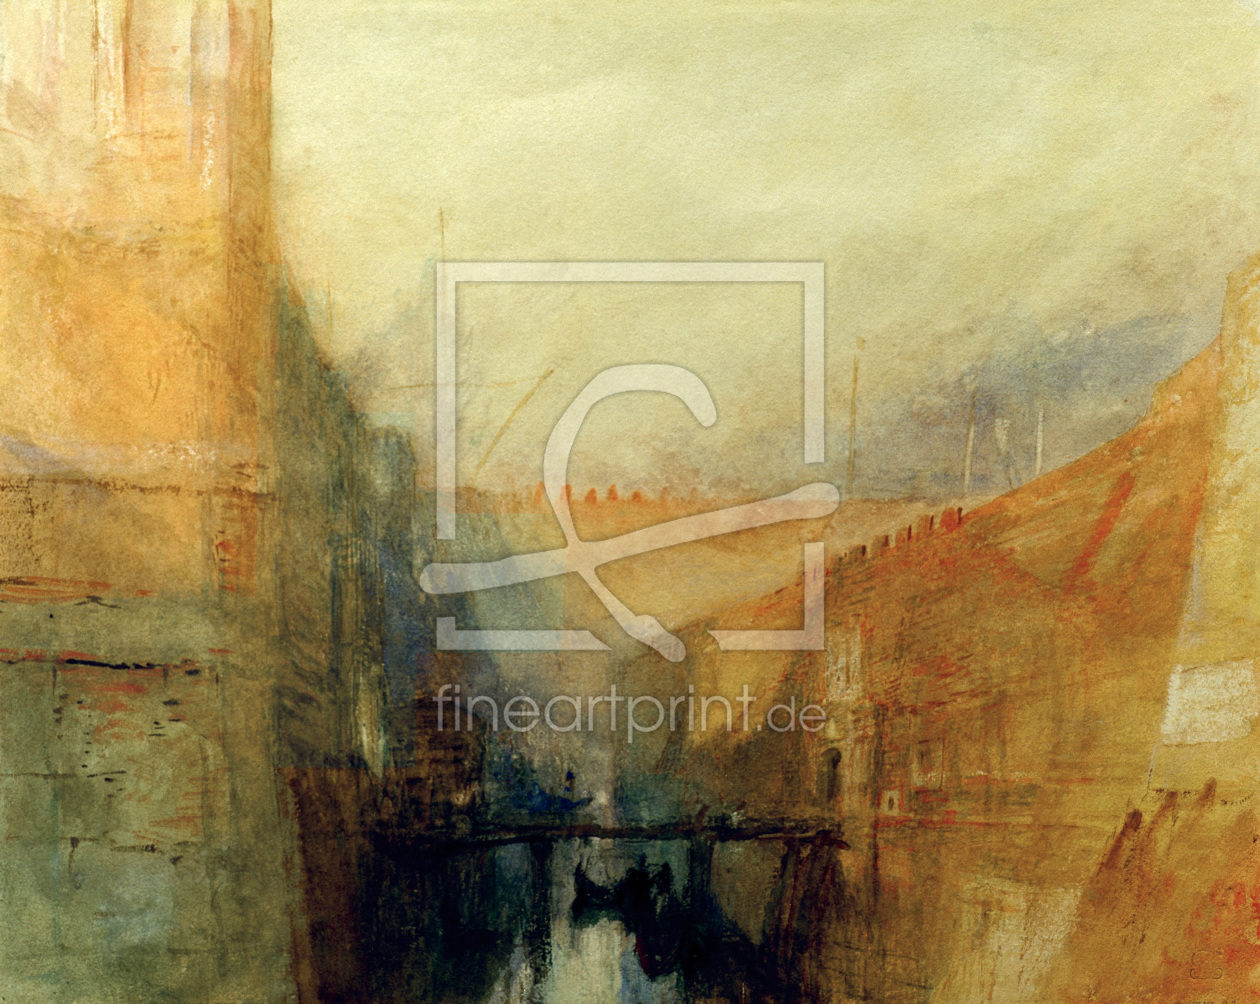 Bild-Nr.: 30008067 W.Turner, Venice, The Arsenal erstellt von Turner, Joseph Mallord William